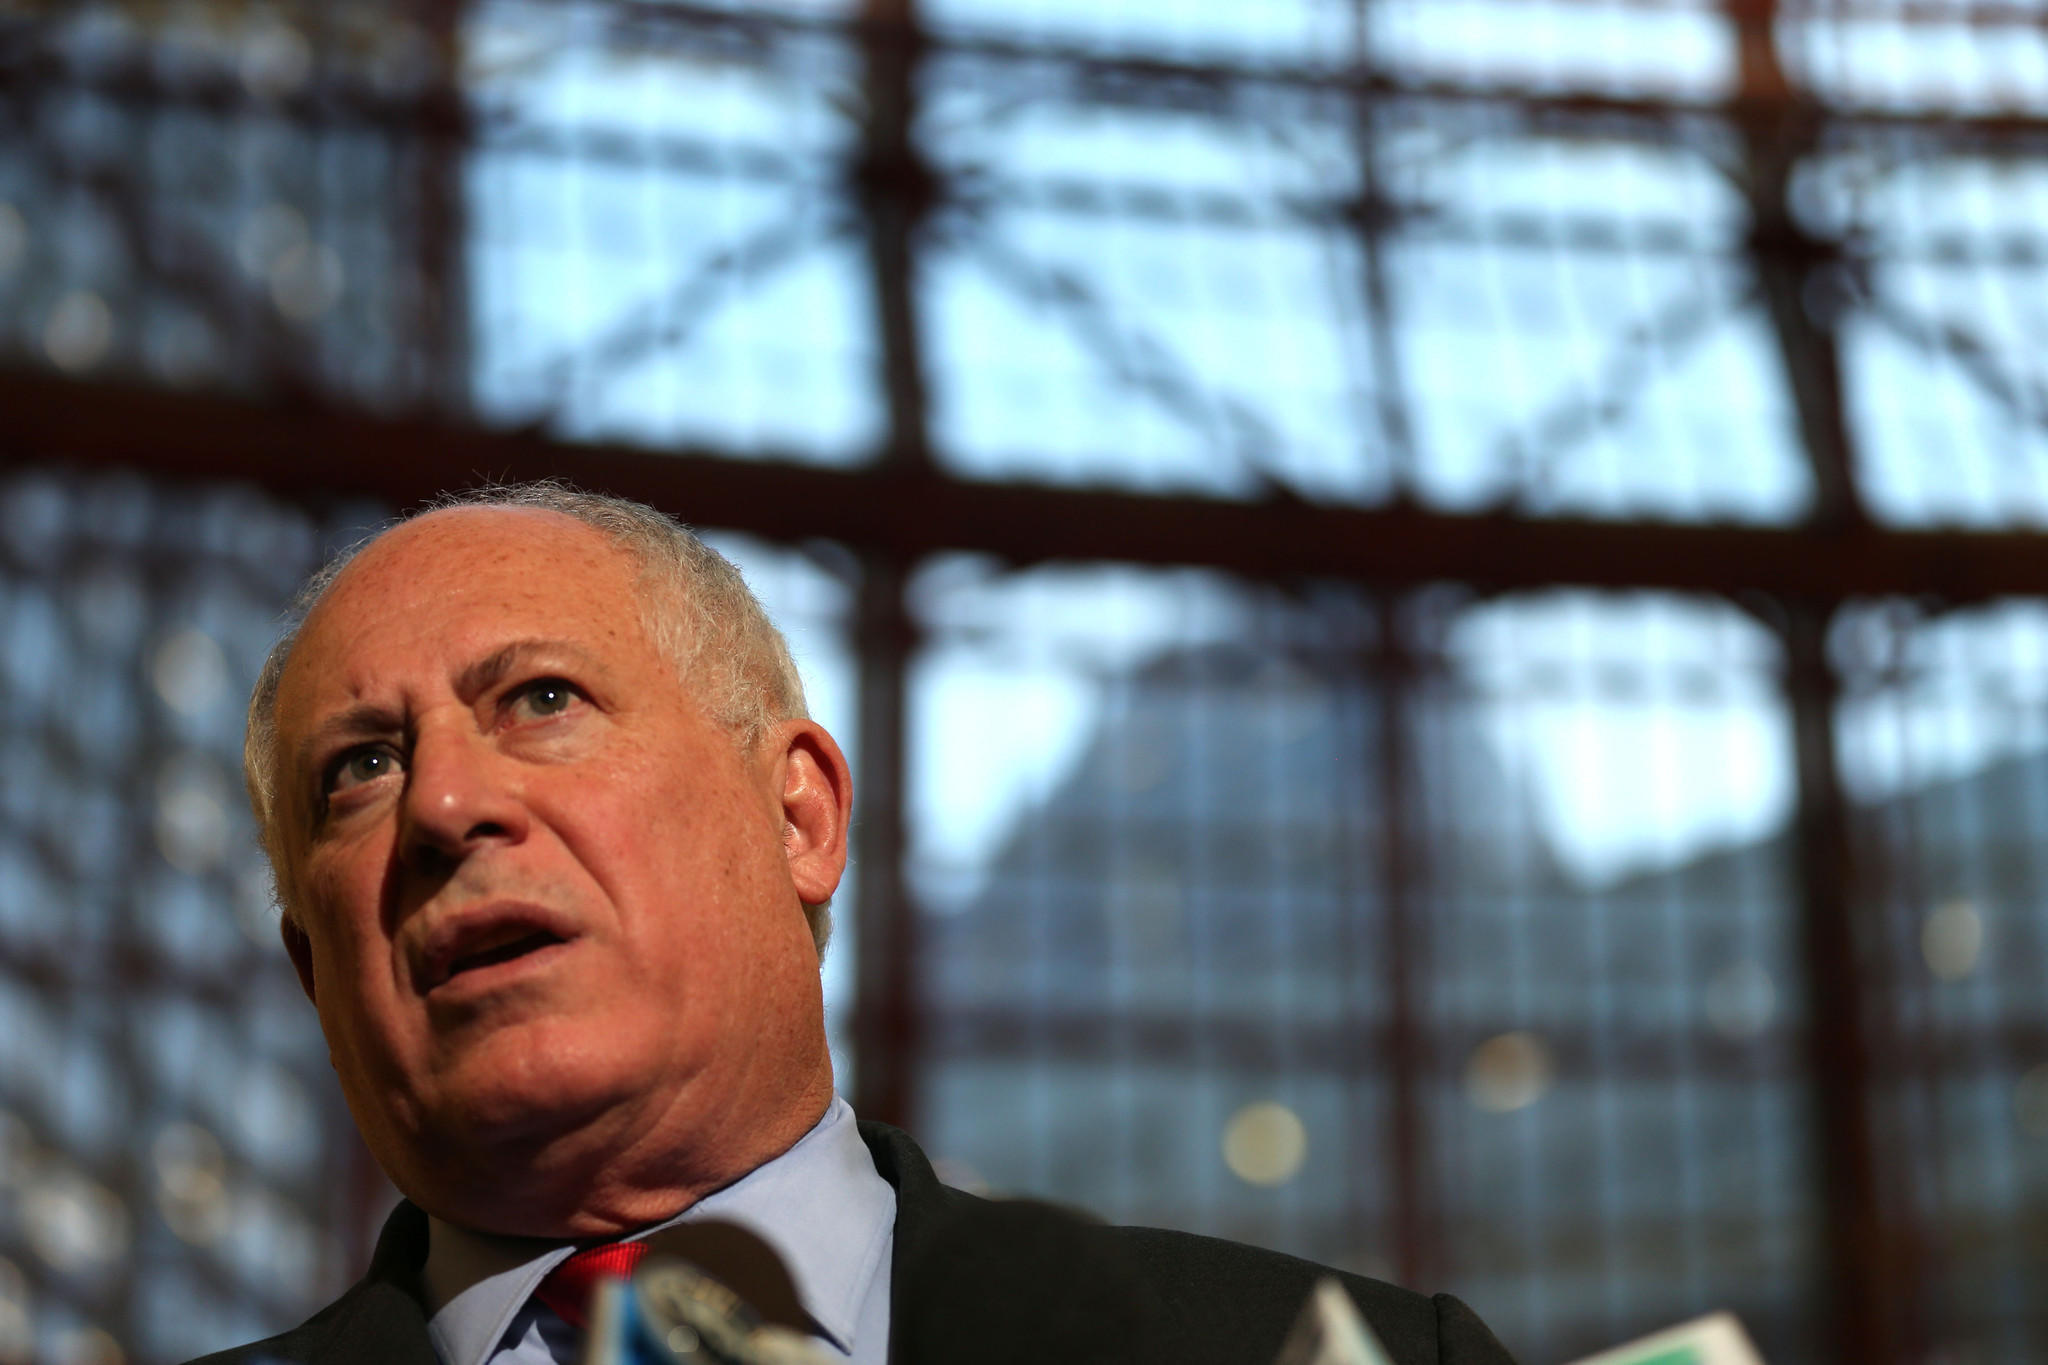 Illinois Gov. Pat Quinn has been calling for a minimum wage increase for nearly a year and hasn't gained much traction at the Capitol.